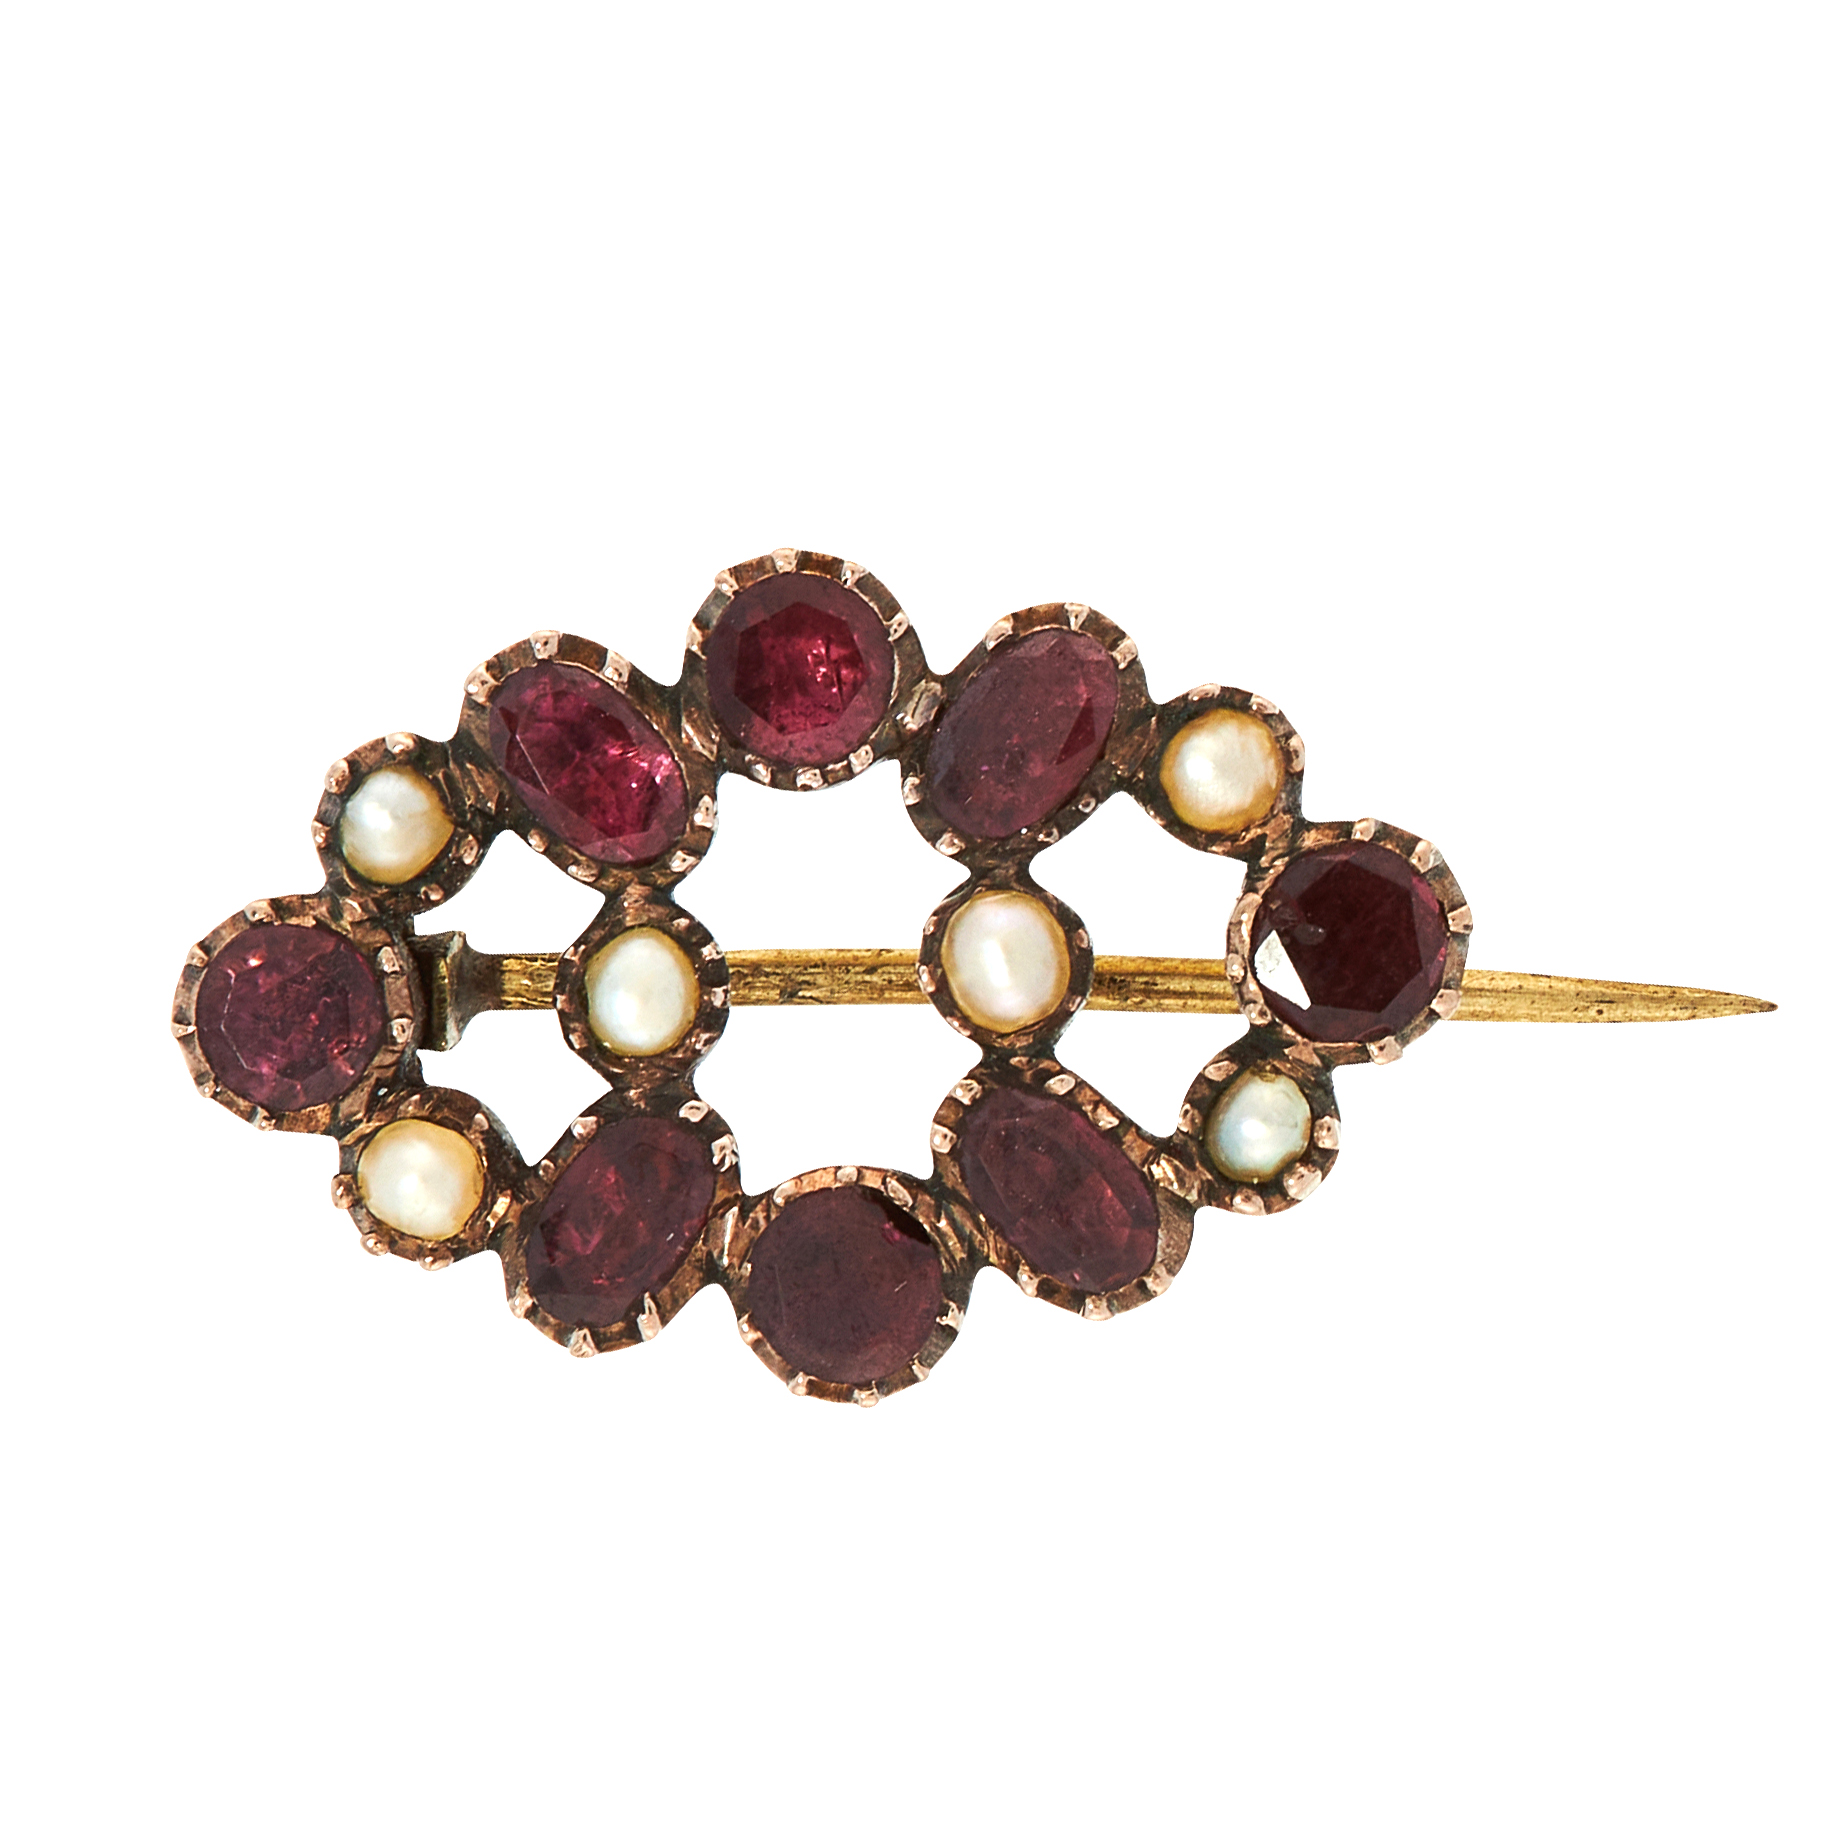 AN ANTIQUE GARNET AND PEARL BROOCH, 19TH CENTURY in yellow gold, set with round and cushion cut